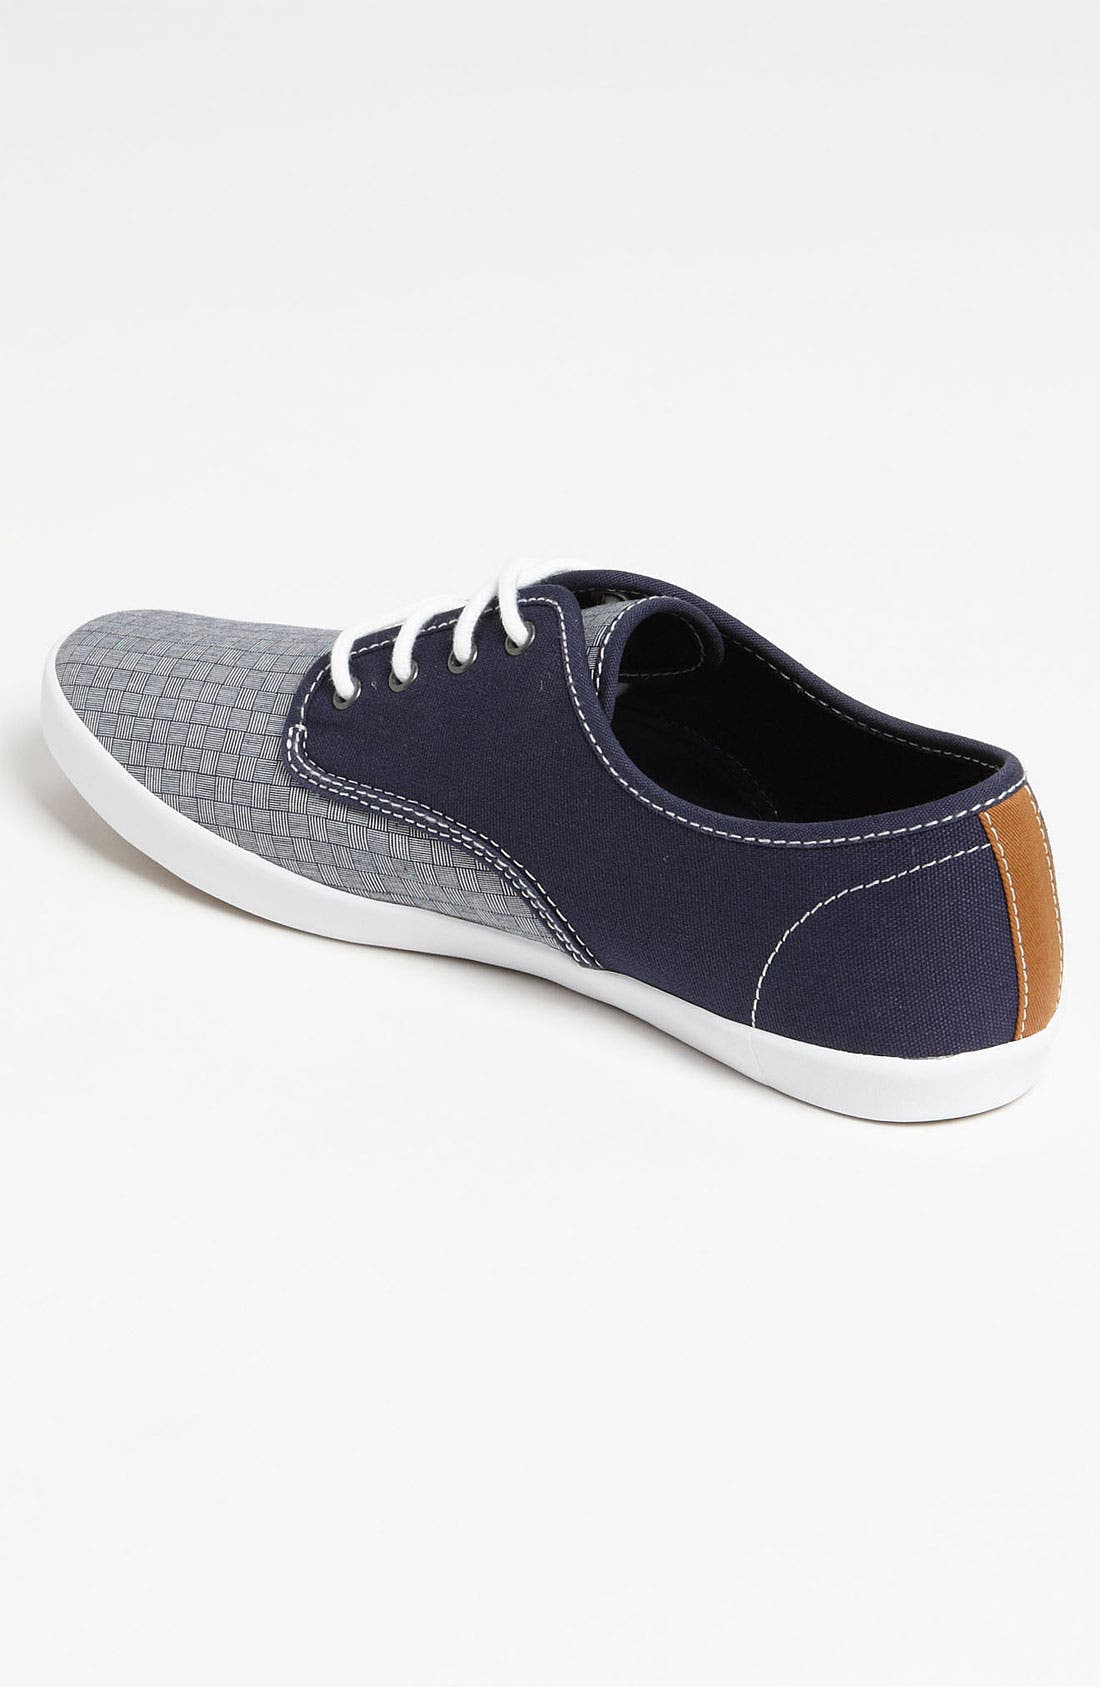 Alternate Image 2  - Fred Perry 'Foxx' Sneaker